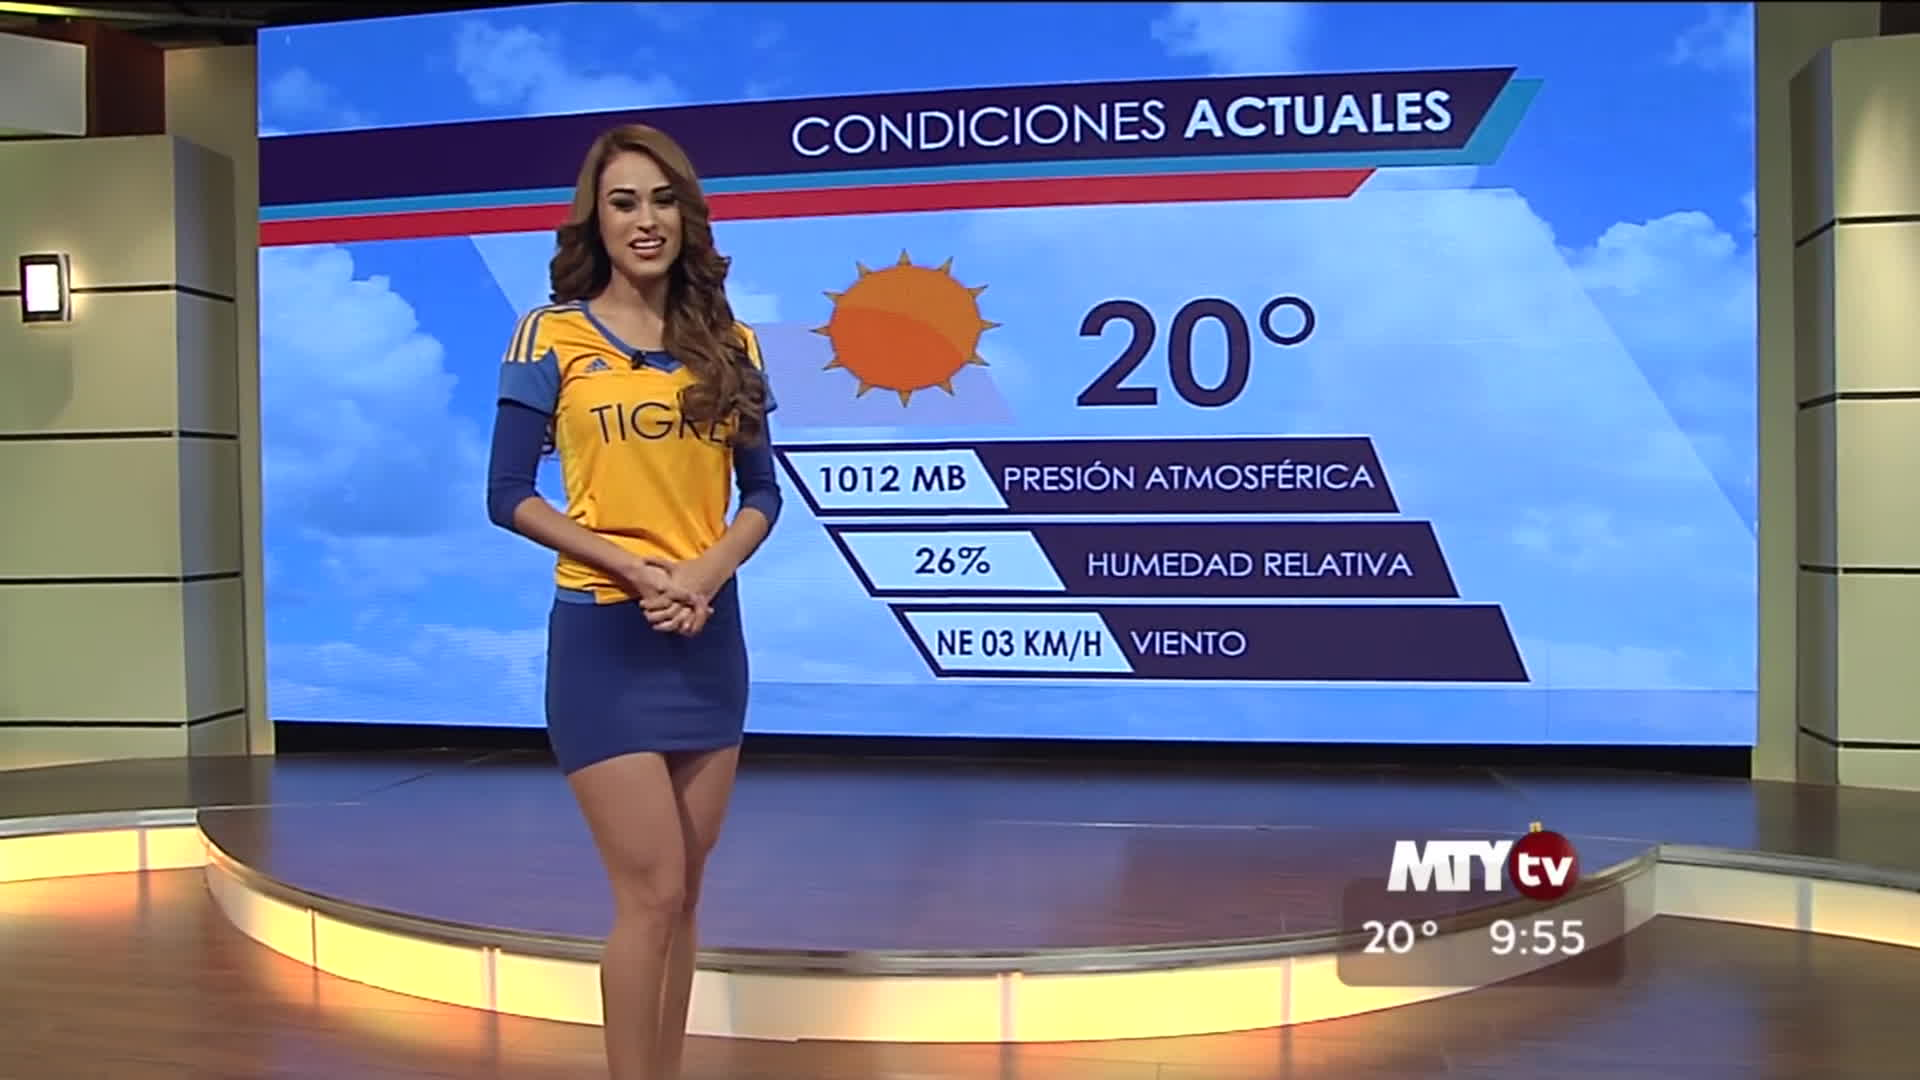 Yanet Garcia Clima Gifs Search | Search & Share on Homdor